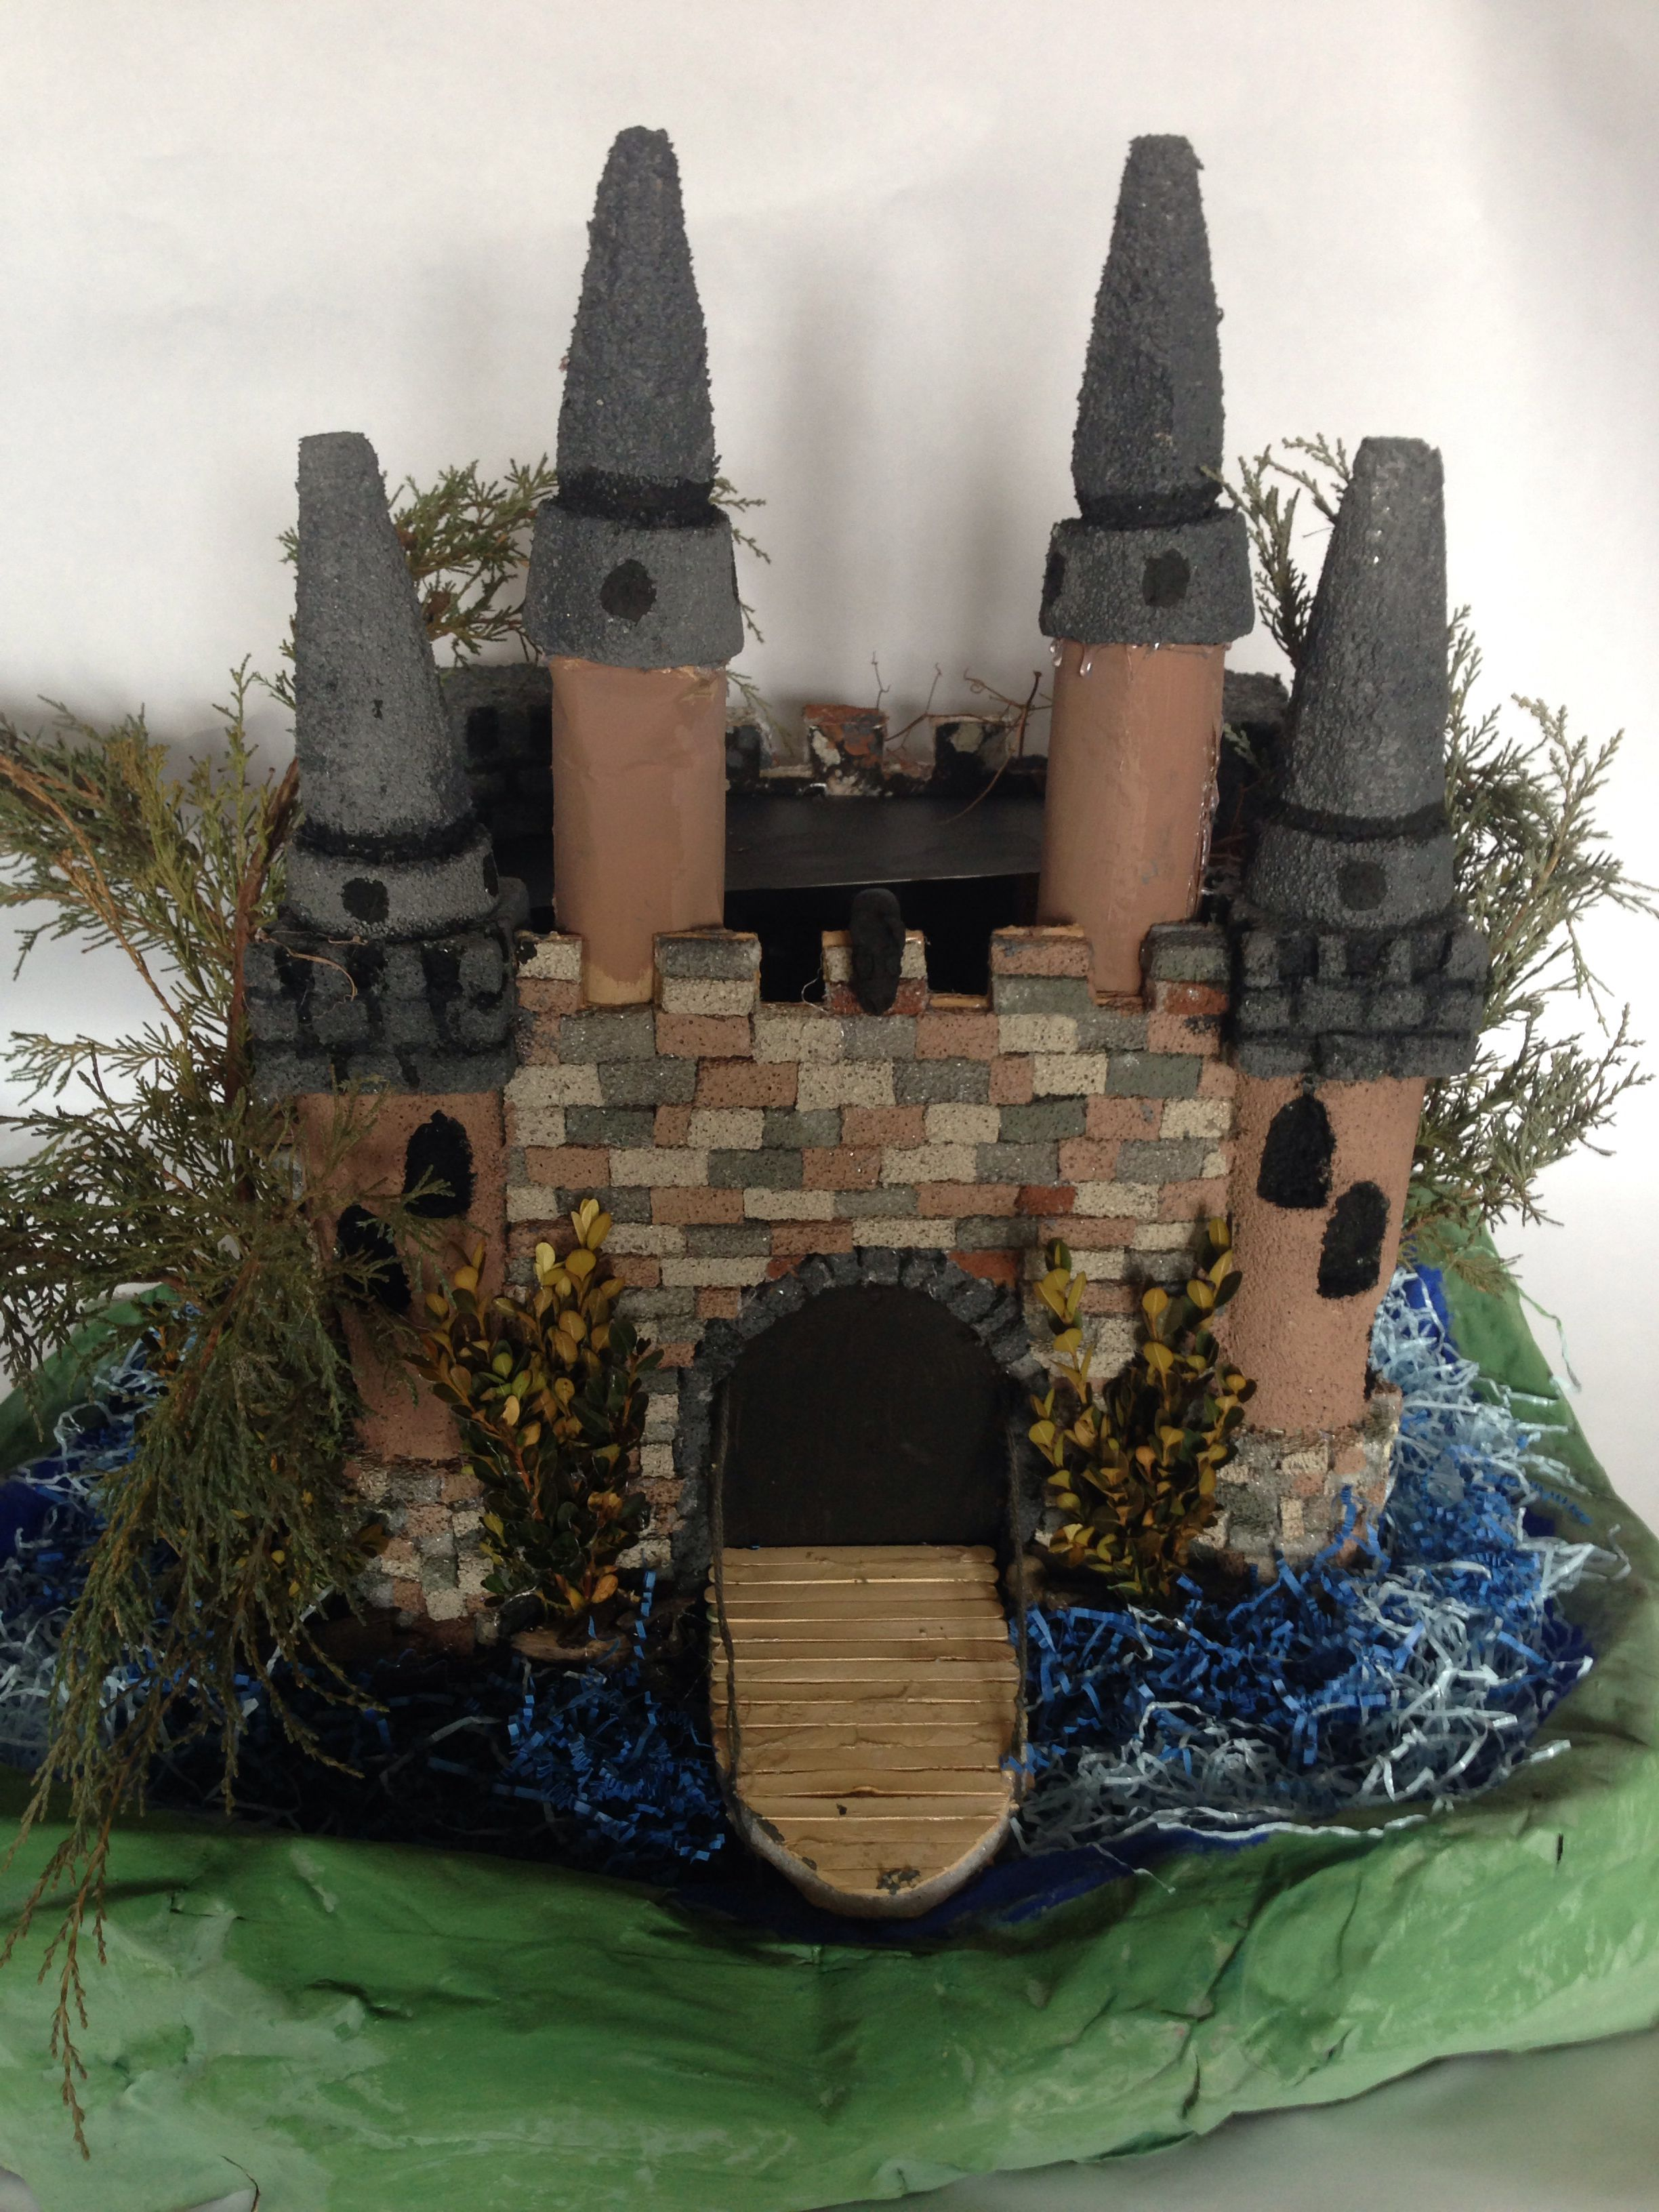 School Project Of Creating A Castle